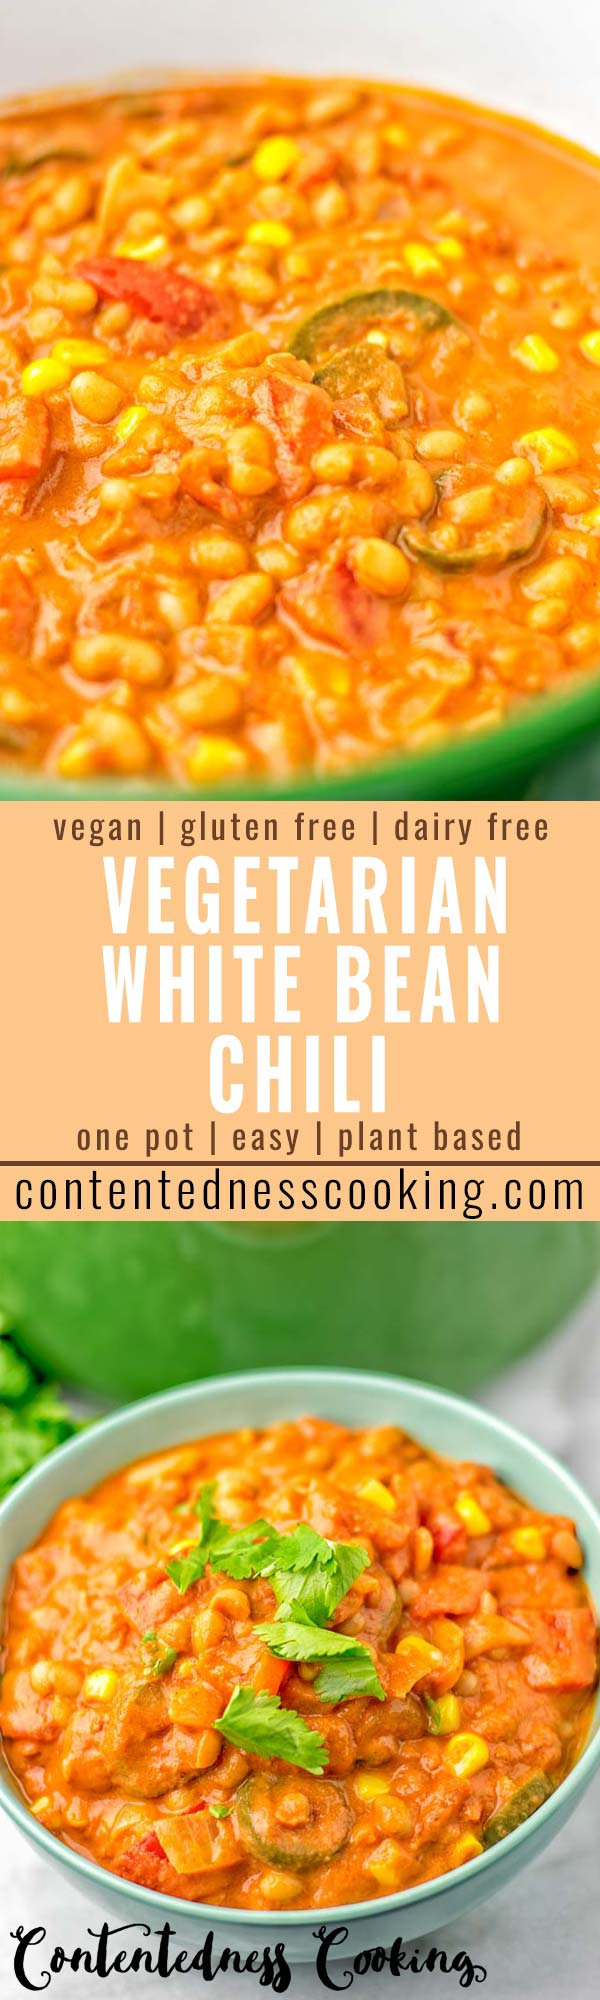 This Vegetarian White Bean Chili is made in one pot and naturally vegan, gluten free. It is super easy to make and packed with fantastic flavors. So amazing for dinner, lunch, meal prep, work lunches and so much more. Try it now and wow yourself #vegan #glutenfree #dairyfree #vegetarian #onepotmeals #chili #dinner #lunch #mealprep #worklunchideas #bugdetmeals #contentednesscooking #familydinnerideas #kidsdishes